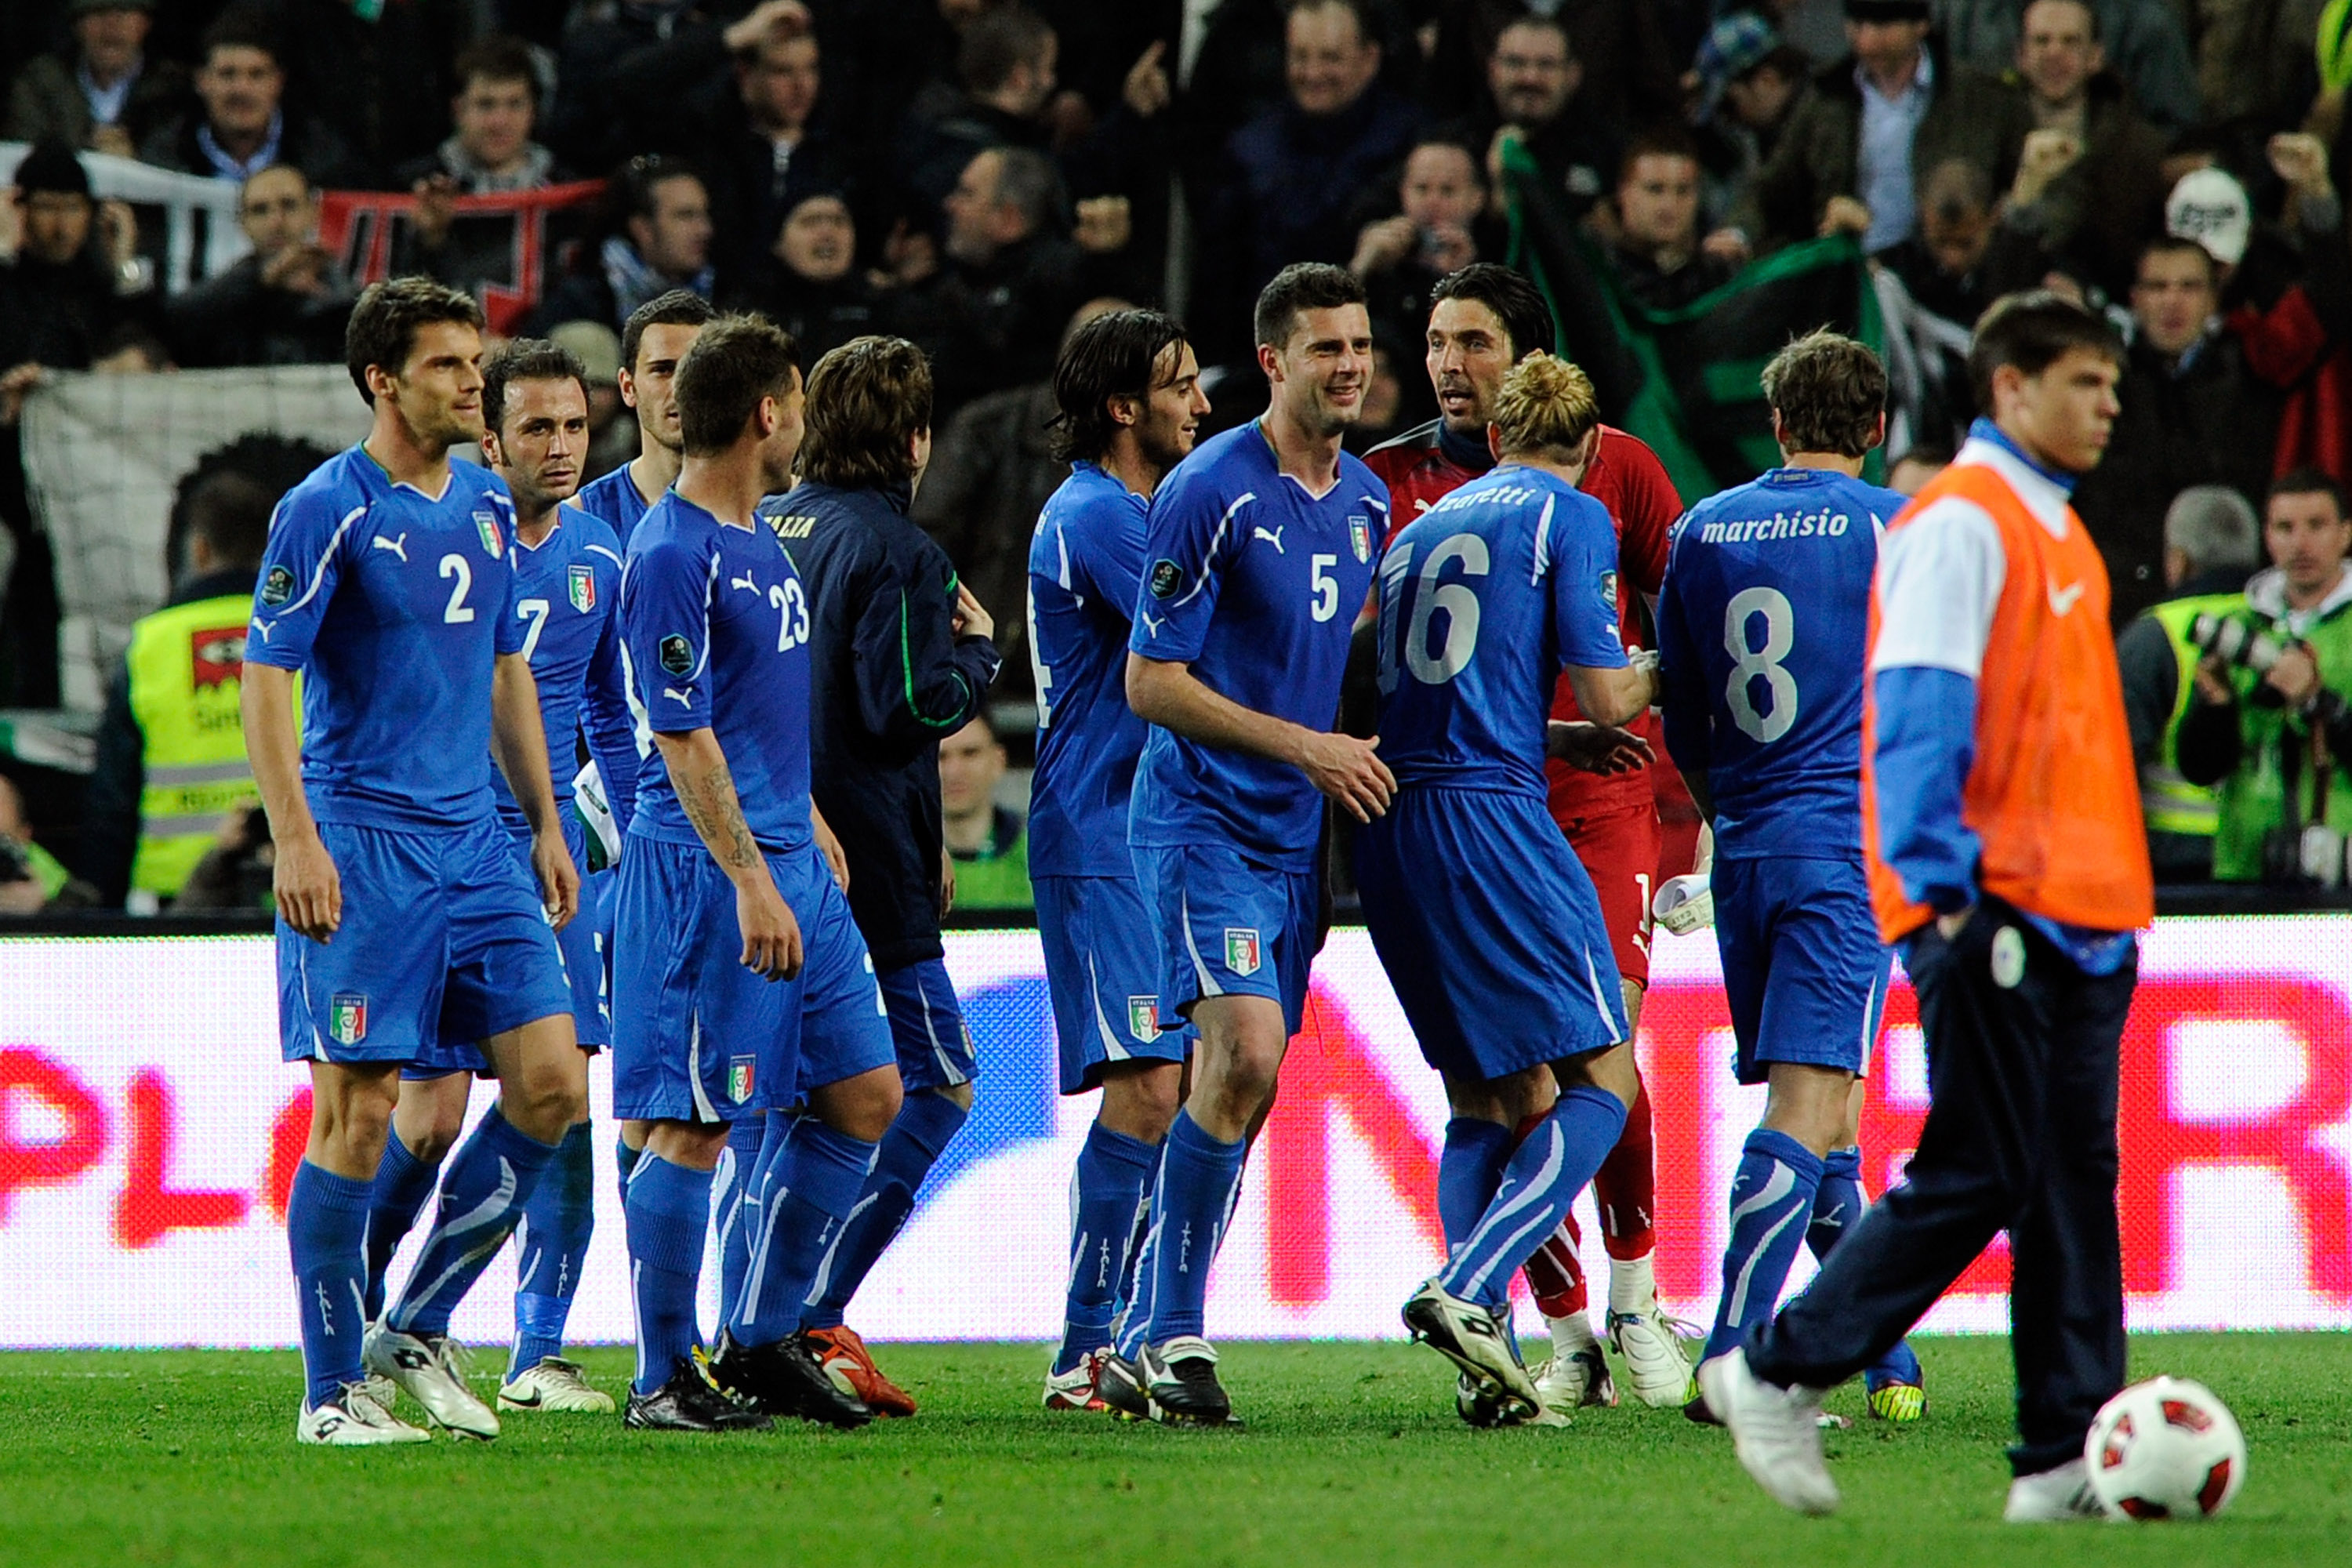 LJUBLJANA, SLOVENIA - MARCH 25:  Players of Italy celebrate during the UEFA EURO 2012 qualifier between Slovenia and Italy on March 25, 2011 in Ljubljana, Slovenia.  (Photo by Claudio Villa/Getty Images)